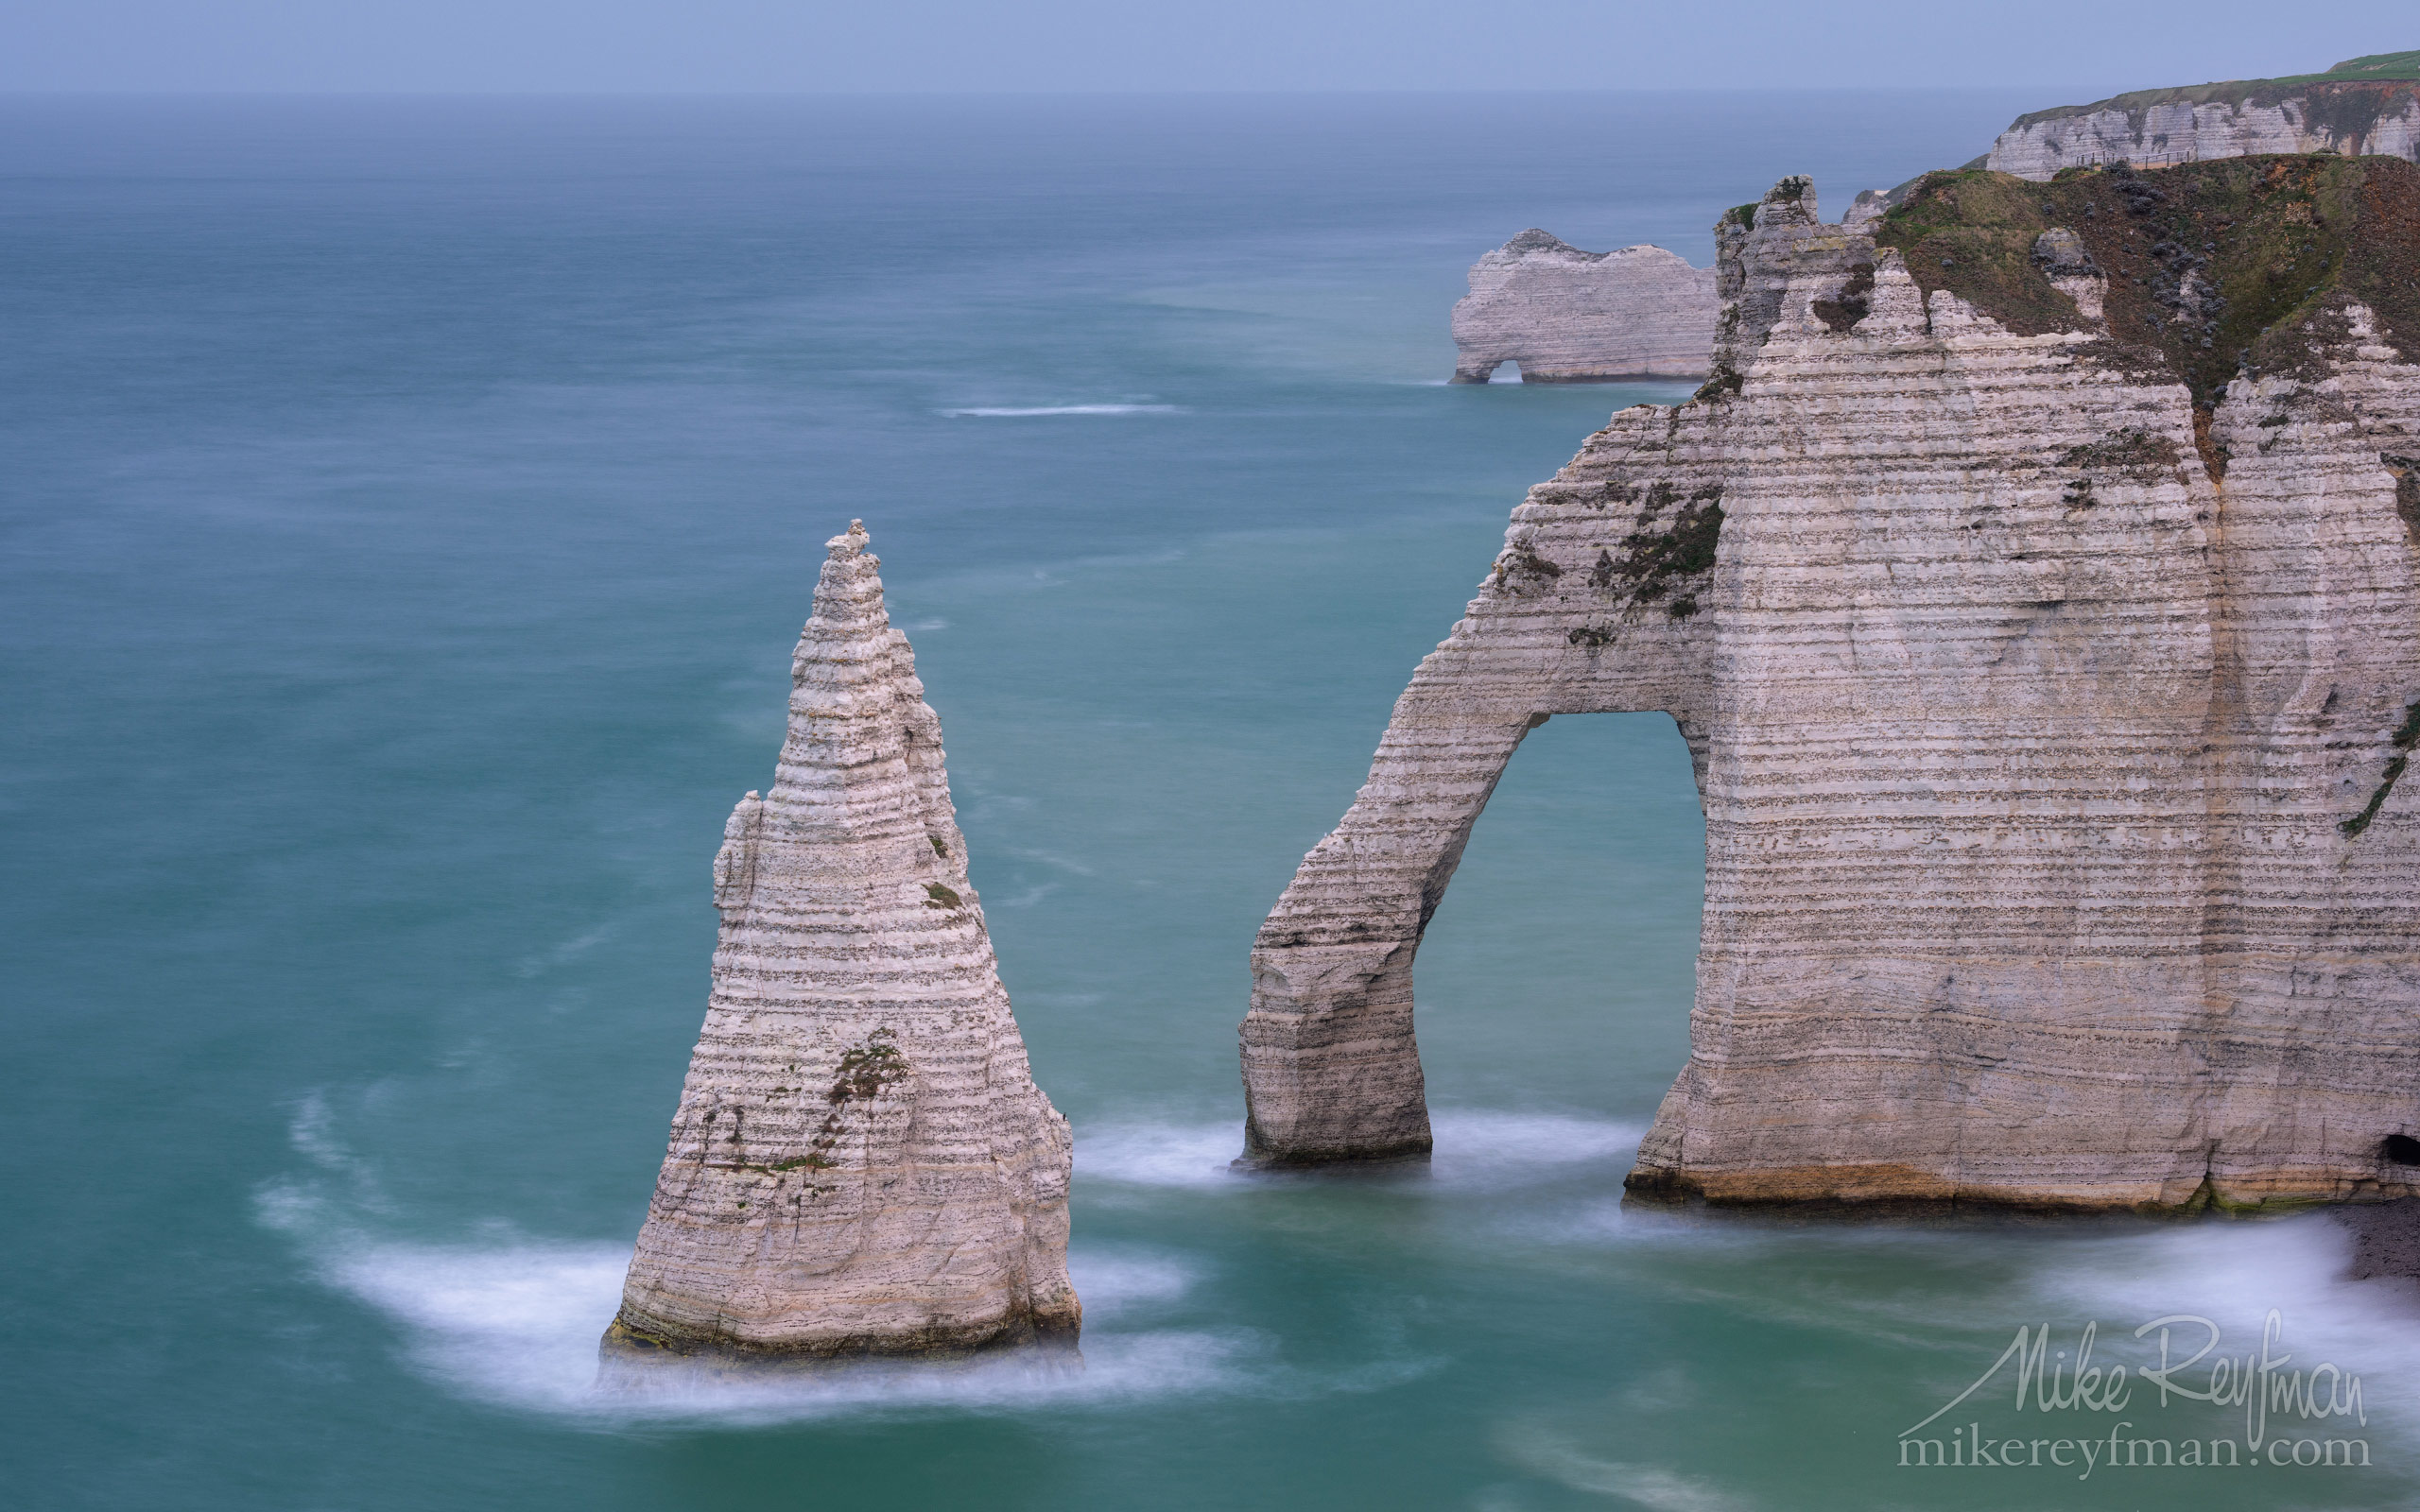 Arch Porte d'Aval and L'Aiguille - the Needle with the Porte d'Amont arch in the distance. Cote d'Albatre – The Alabaster Coast. Ertretat, Normandy, France ET1-MR50A0548 - White Chalk Cliffs and Arches of Alabaster Coast. Etretat, Upper Normandy, France - Mike Reyfman Photography